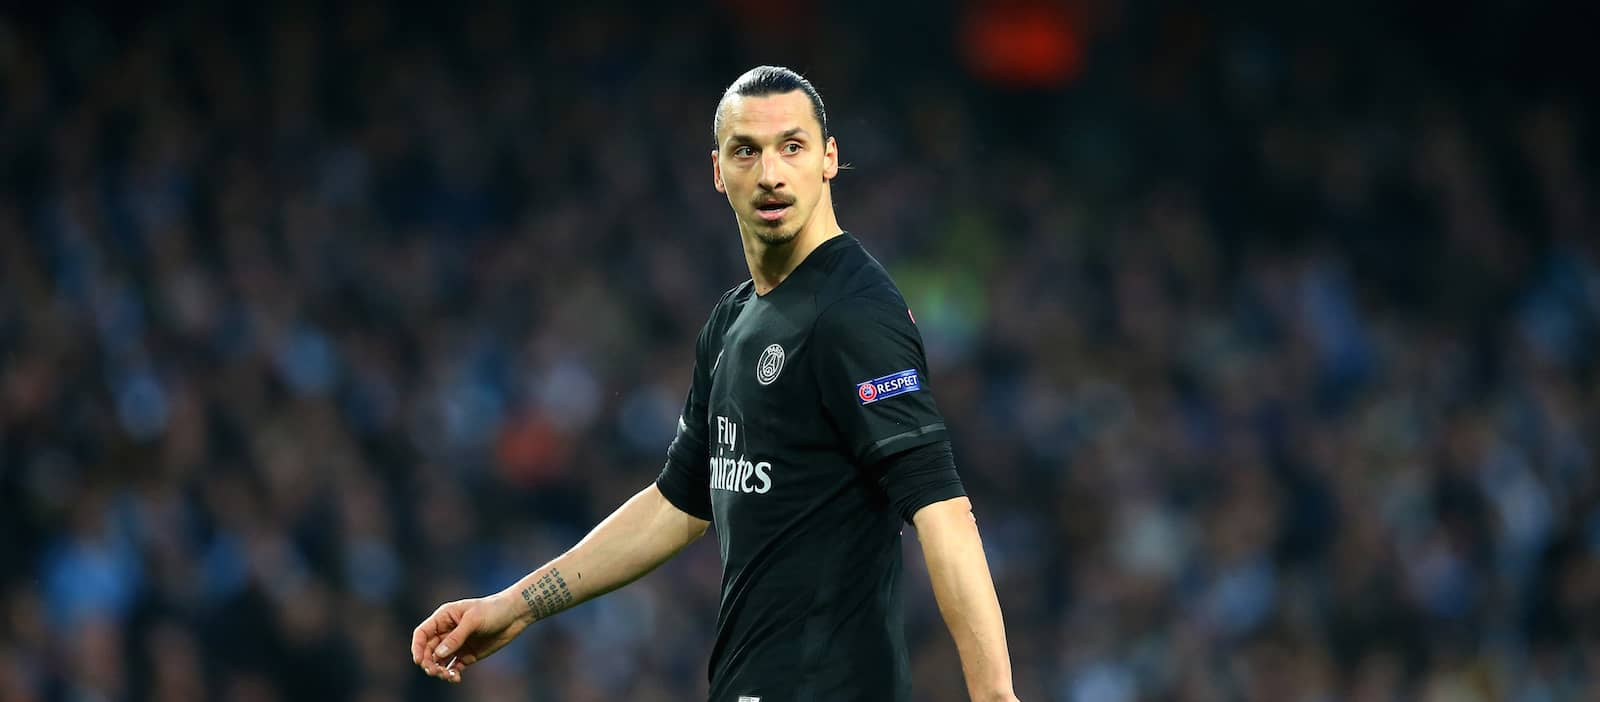 Zlatan Ibrahimovic invisible as PSG lose to Man City in Champions League